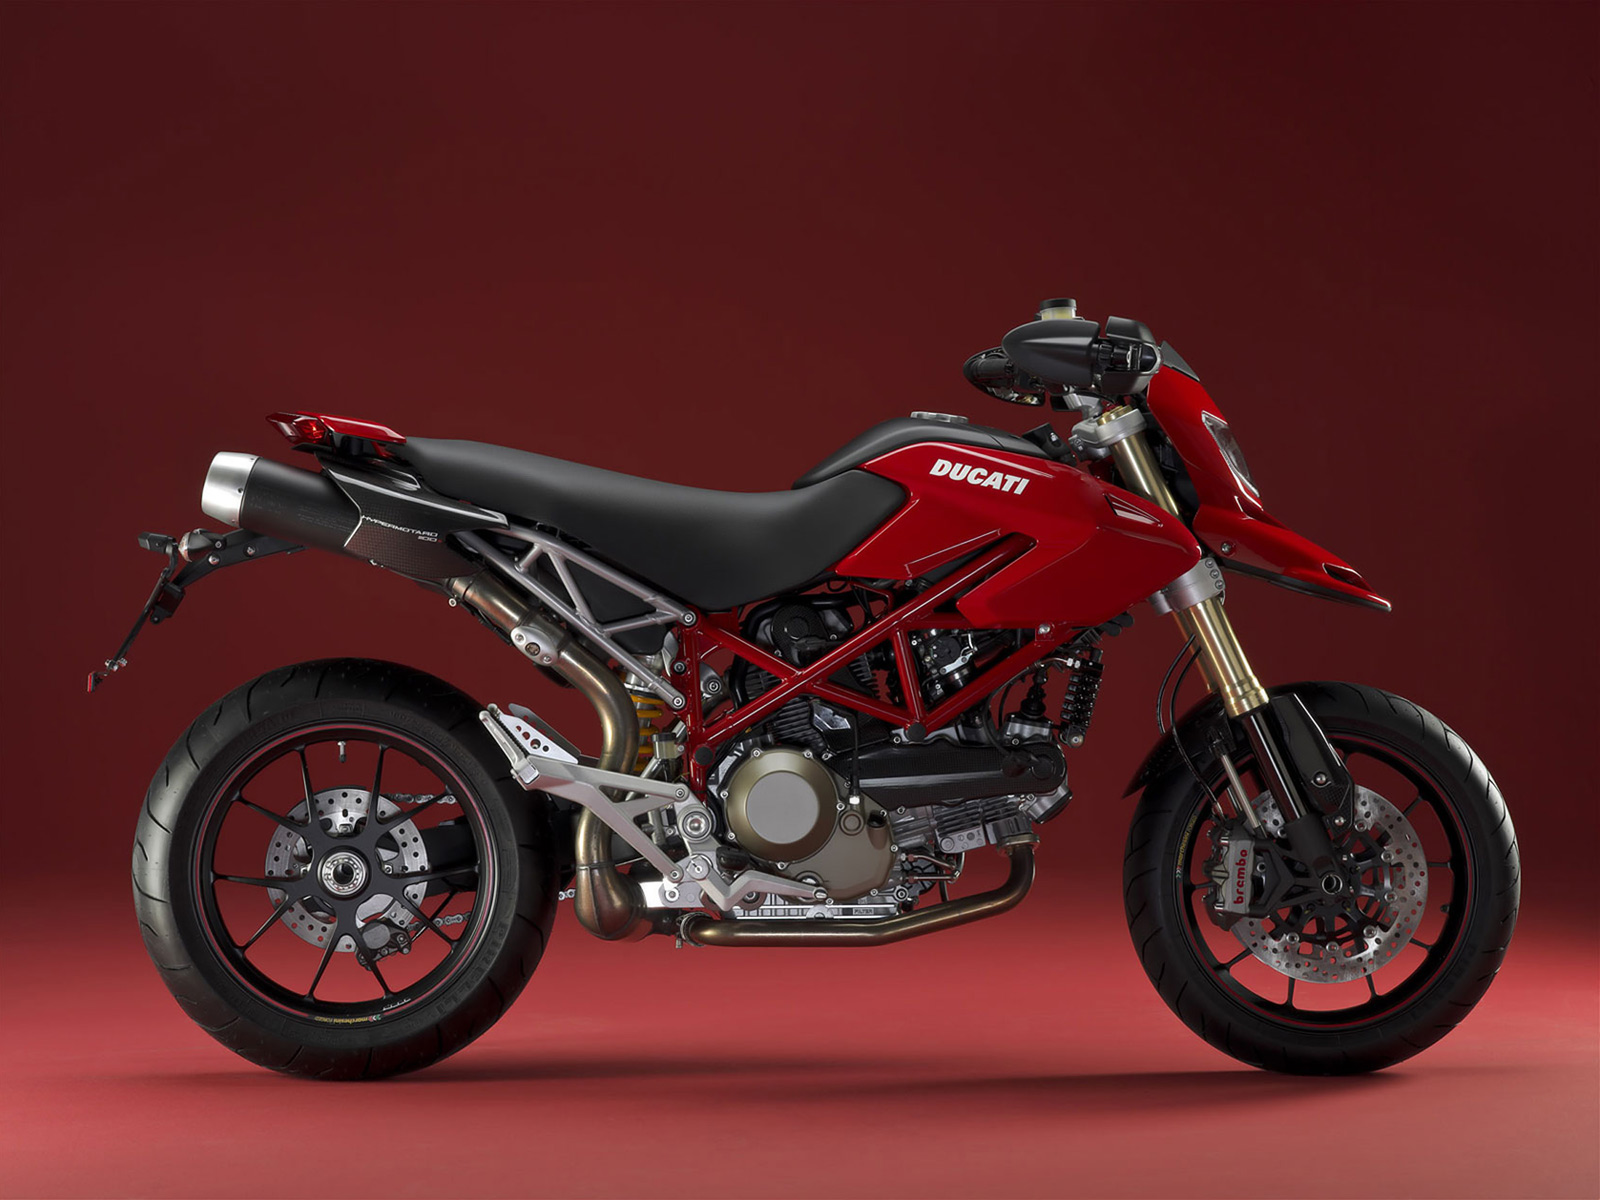 Ducati HM Hypermotard 2006 images #79418